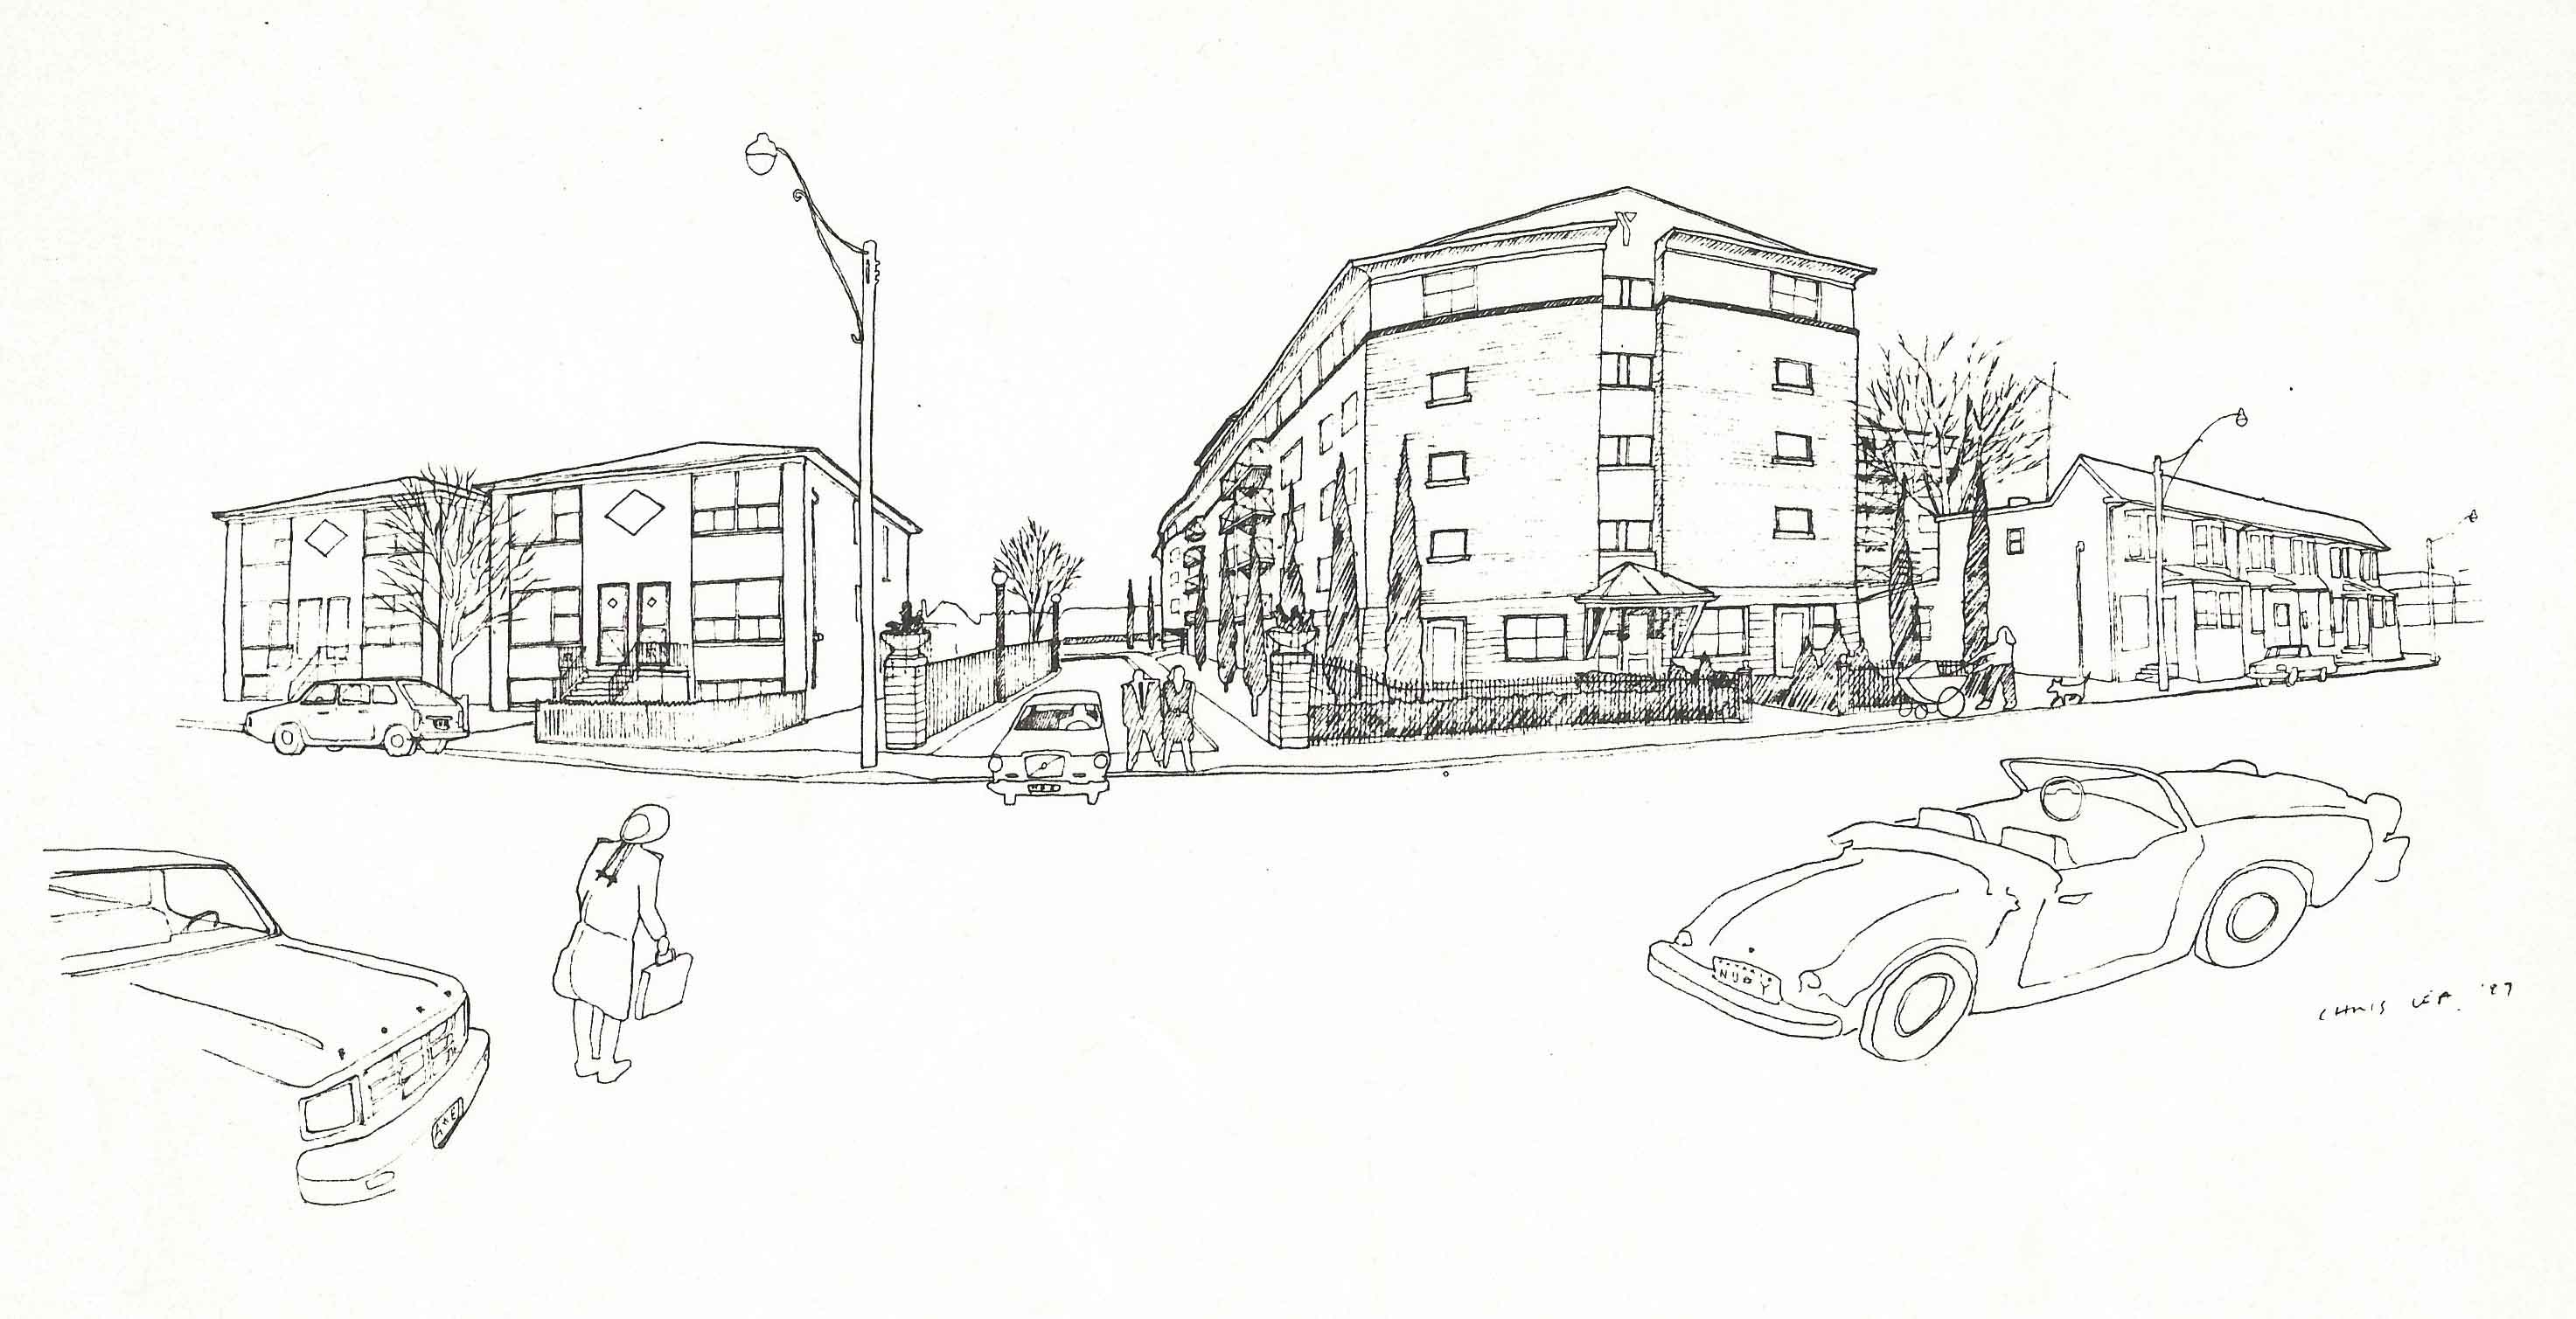 YWCA Pape Avenue sketch, 1987